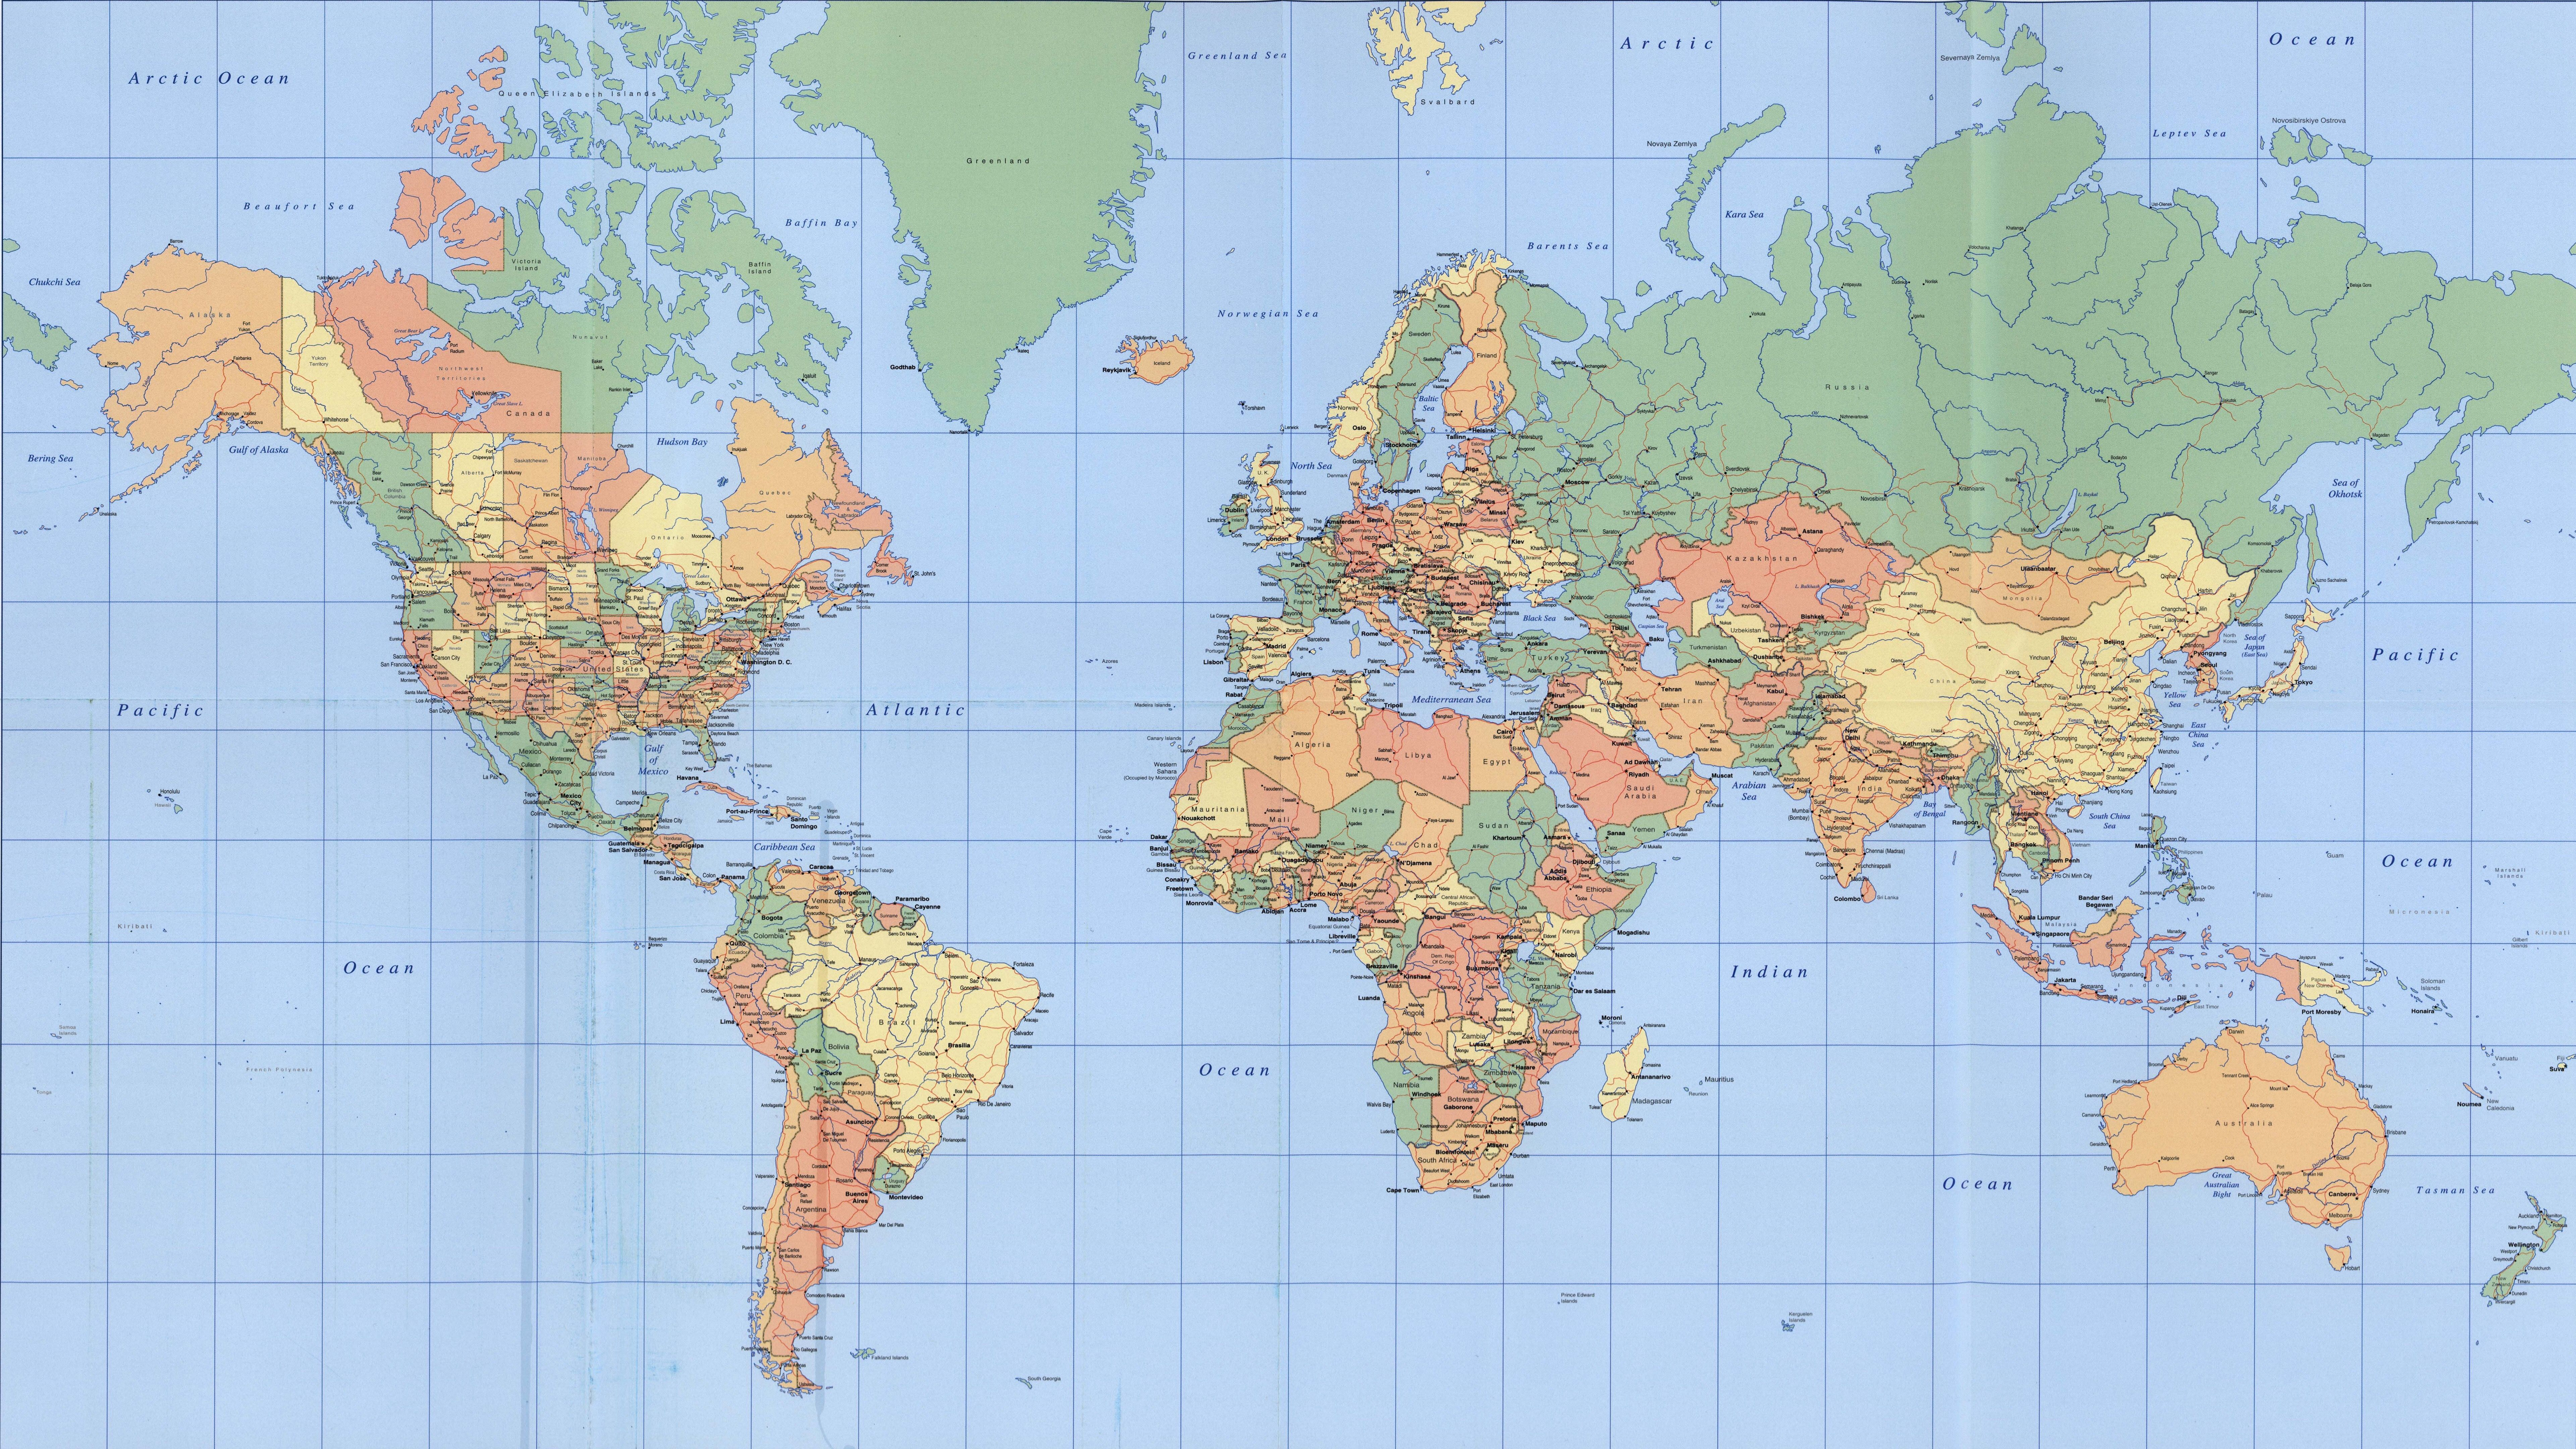 Pin by Mhammed Qerdachi on World World map, Colorful map